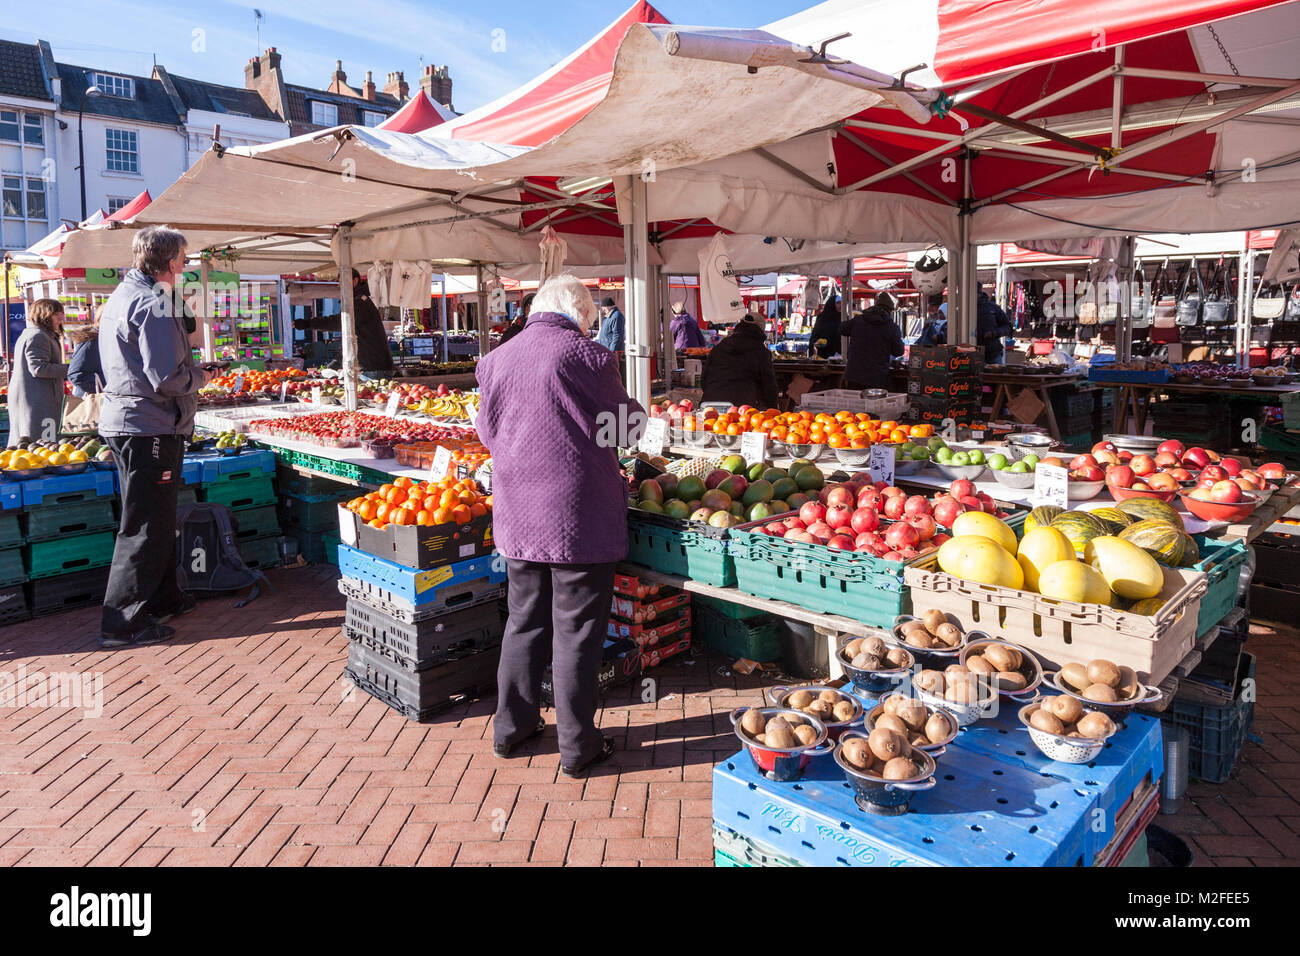 A Bright Sunny Day In The Town Centre This Afternoon But Feeling Cold Shade Thought Credit Keith J Smith Alamy Live News